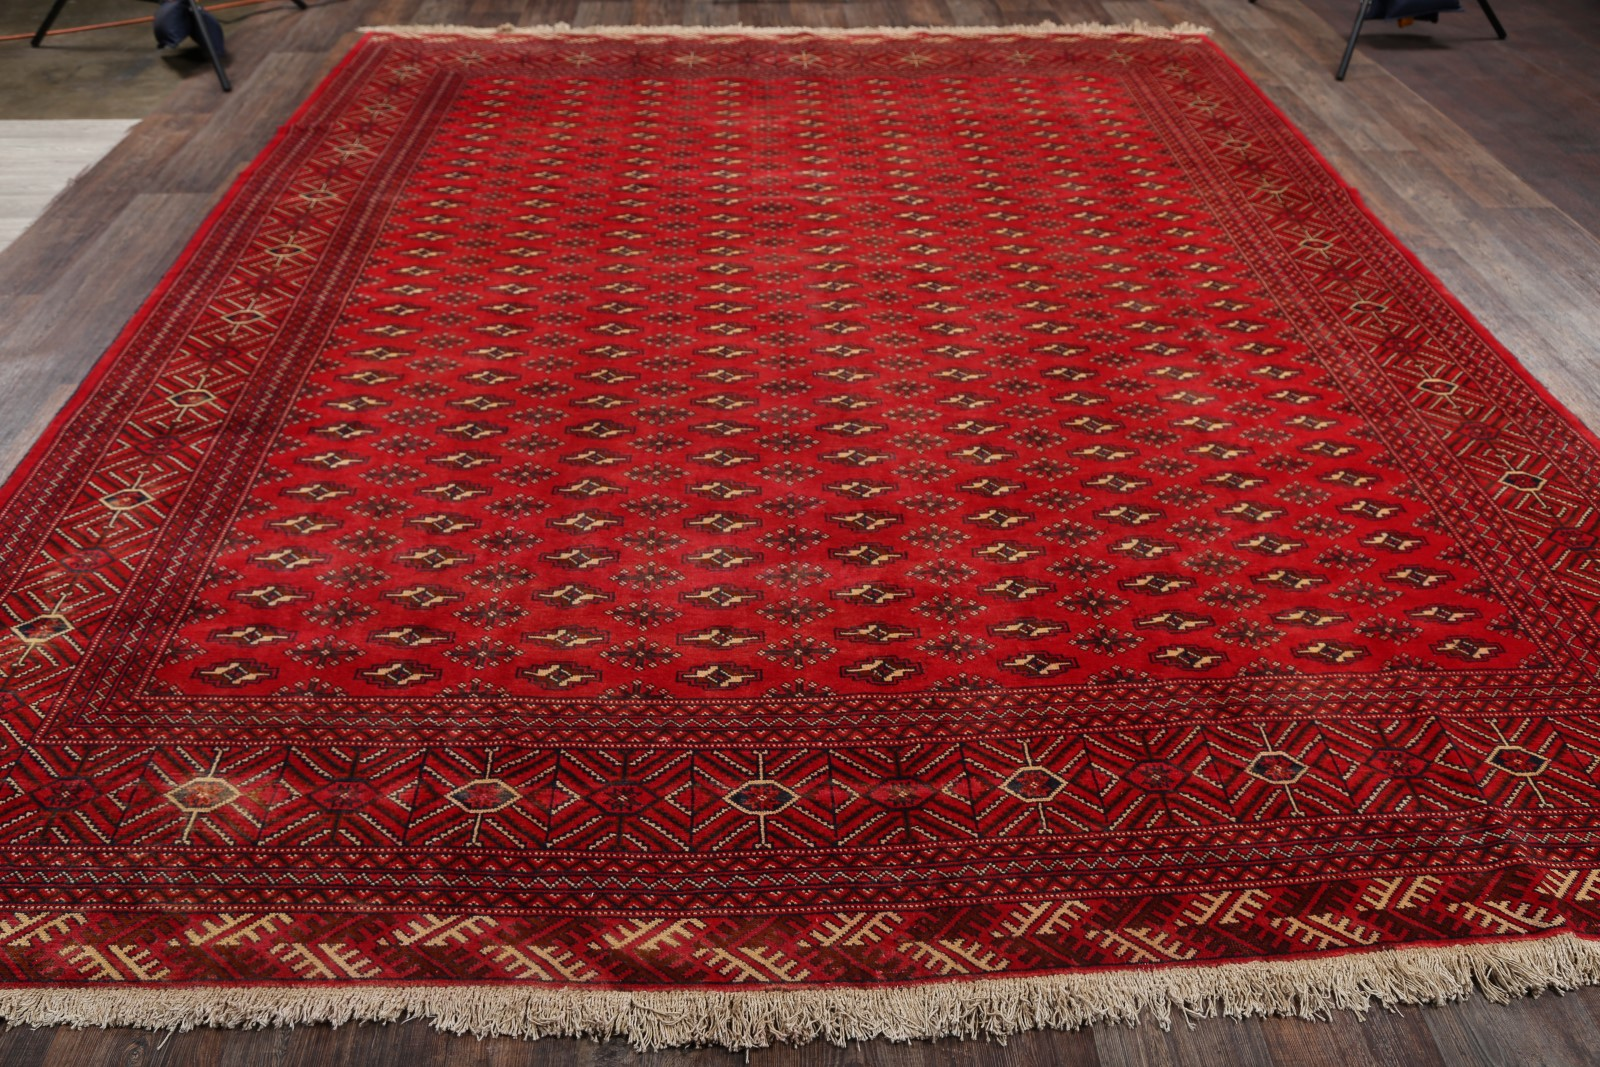 10x12 Turkoman Persian Area Rug